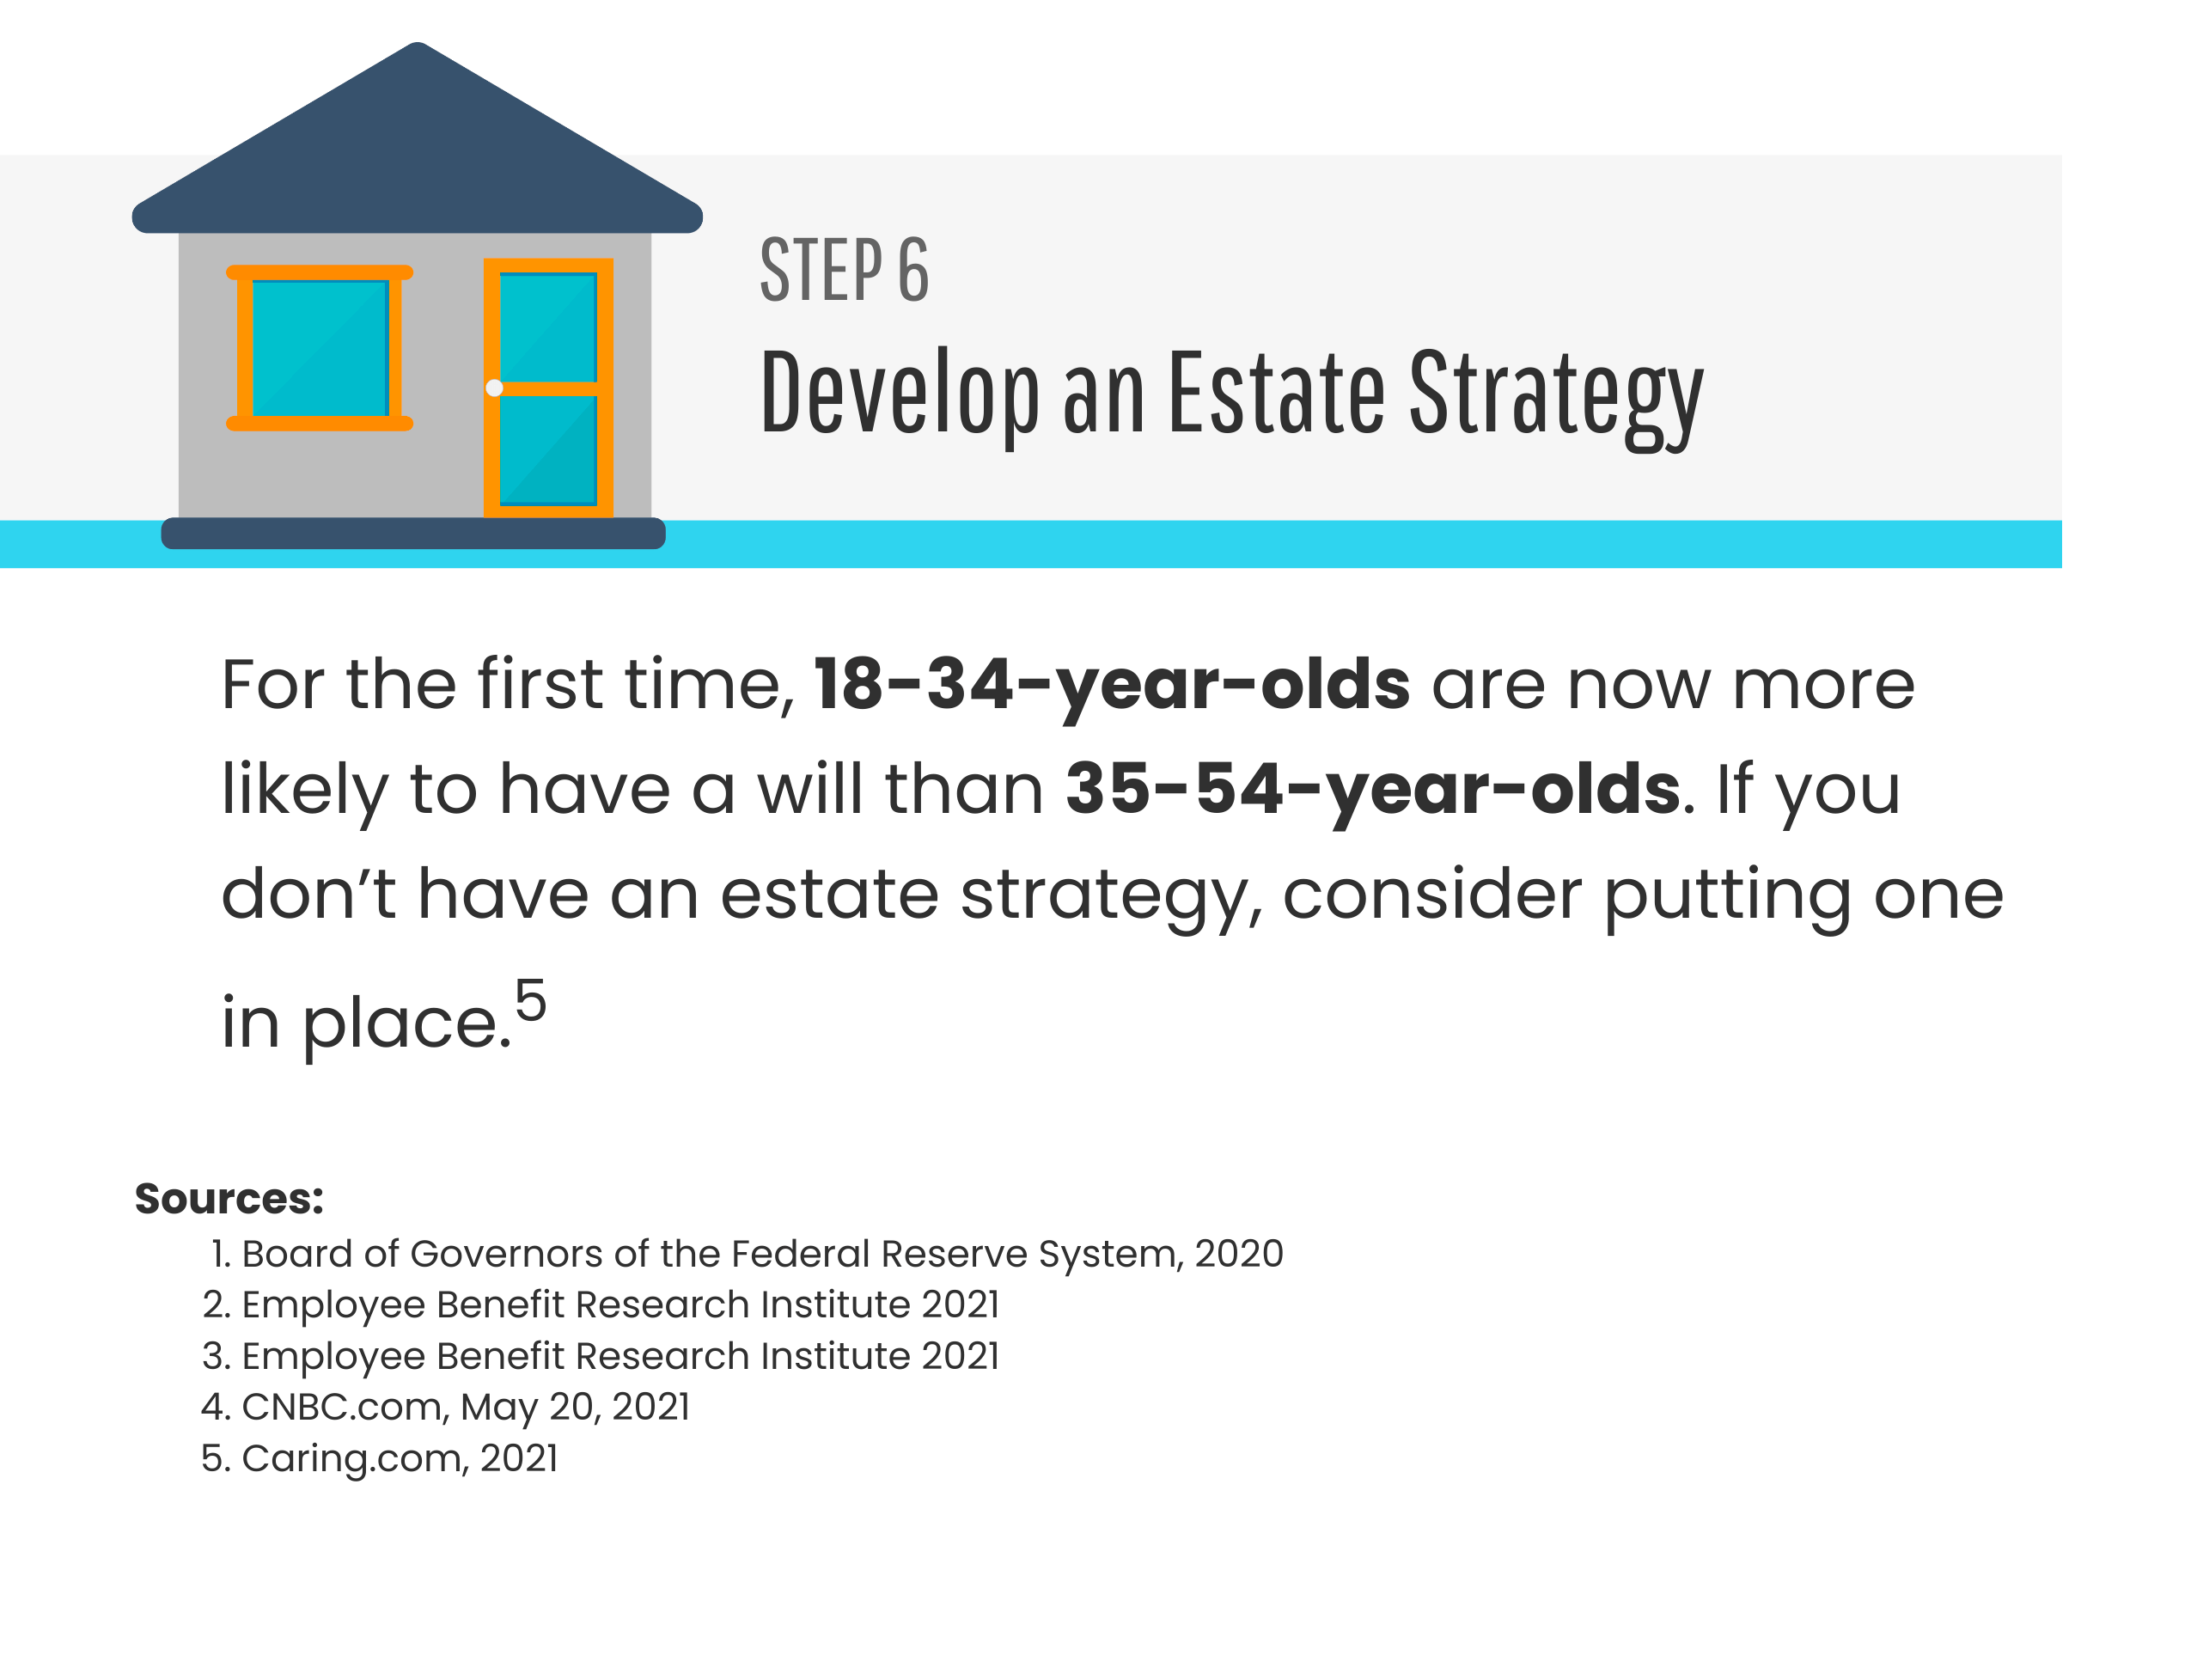 Step 6: Develop an Estate Strategy. For the first time, 18-34-year-olds are now more likely to have a will than 35-54-year-olds. If you don't have an estate strategy, consider putting one in place.